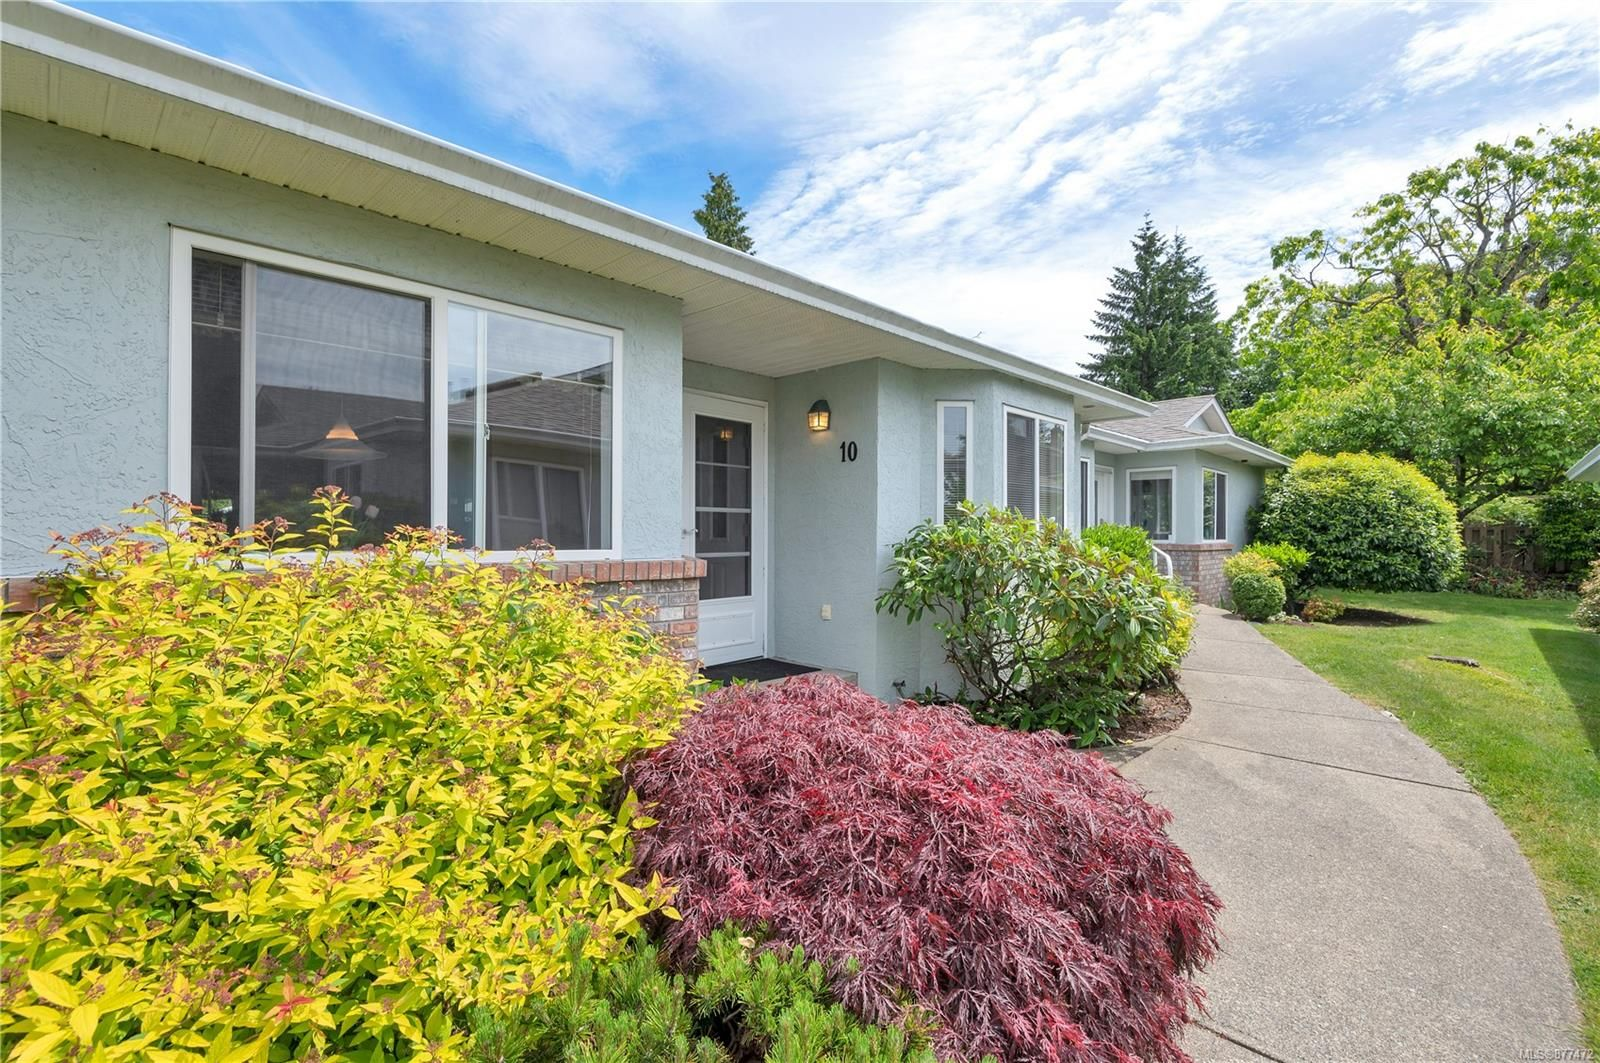 Main Photo: 10 595 Evergreen Rd in : CR Campbell River Central Row/Townhouse for sale (Campbell River)  : MLS®# 877472